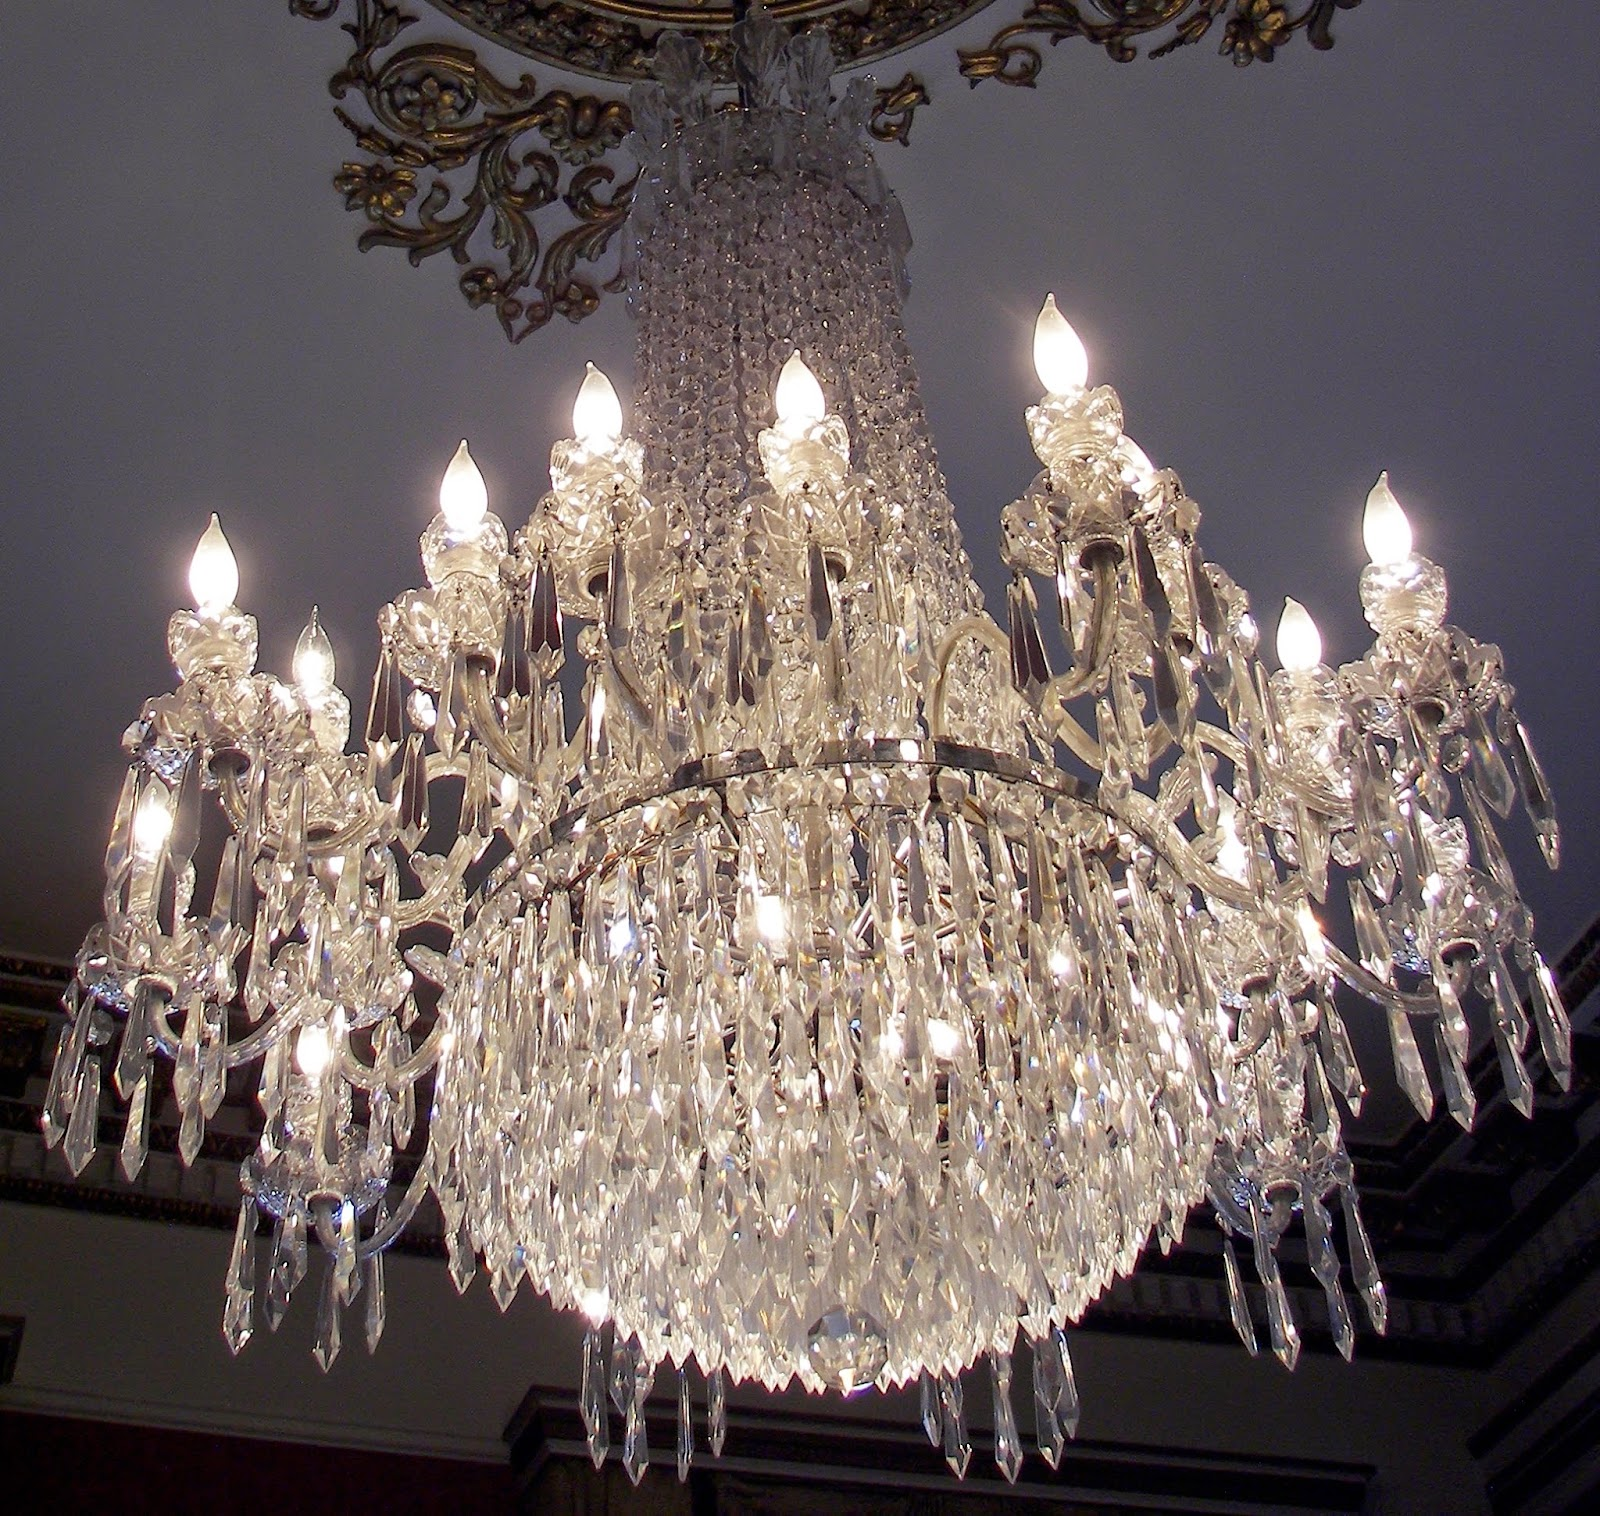 Superb Moving chandeliers safely